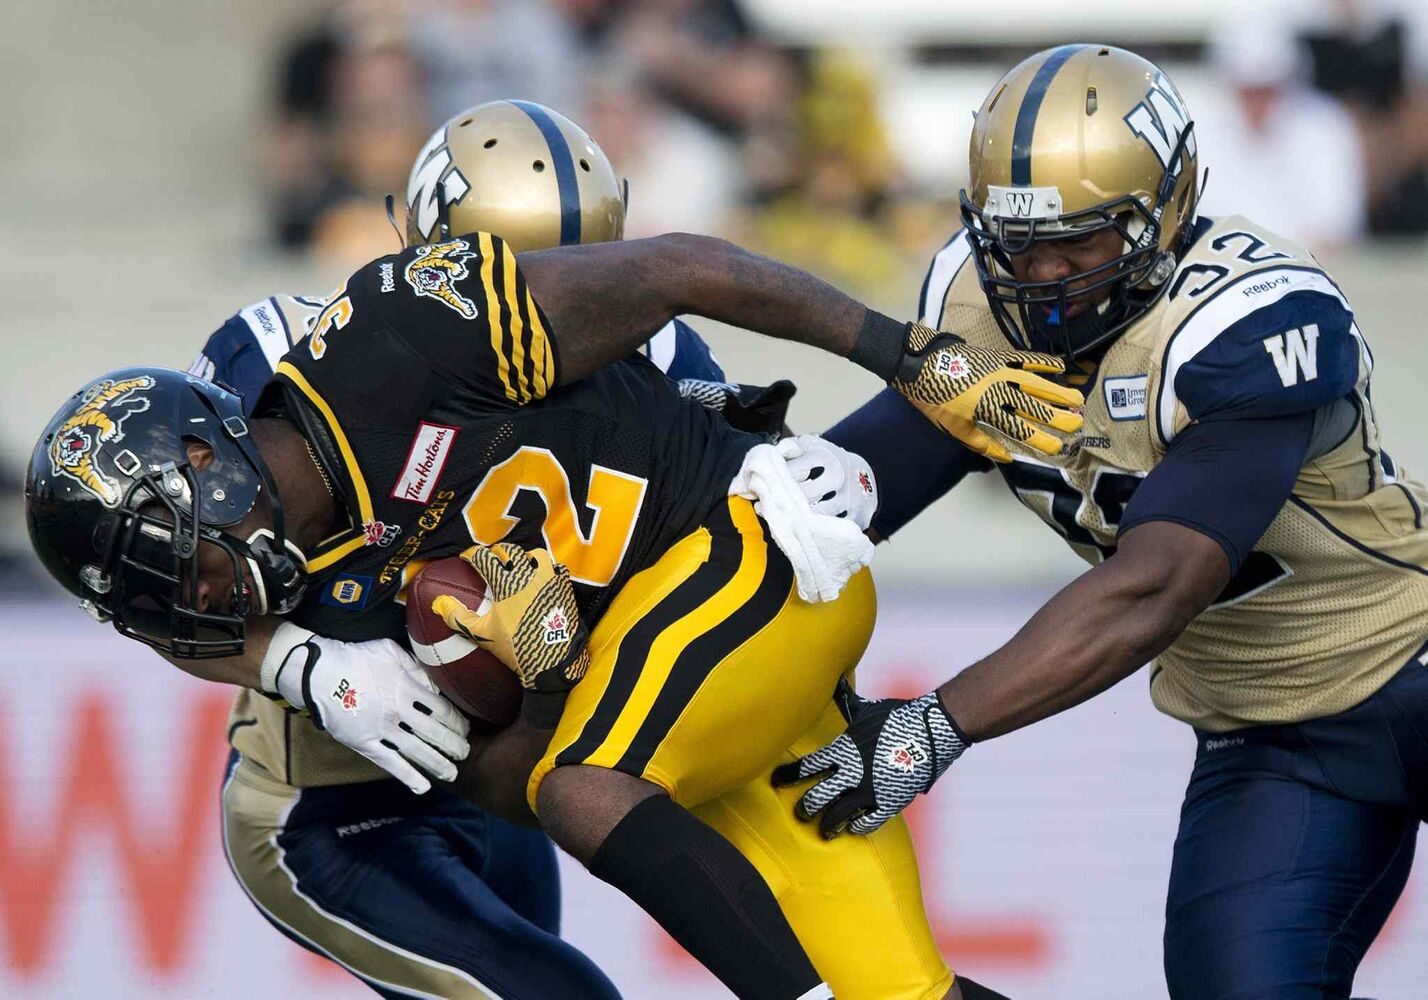 Hamilton Tiger-Cats' running back C.J. Gable, left, gets tackled by Winnipeg Blue Bombers' defensive tackle Bryant Turner, right, during first half of Thursday's game. (Nathan Denette / The Canadian Press)